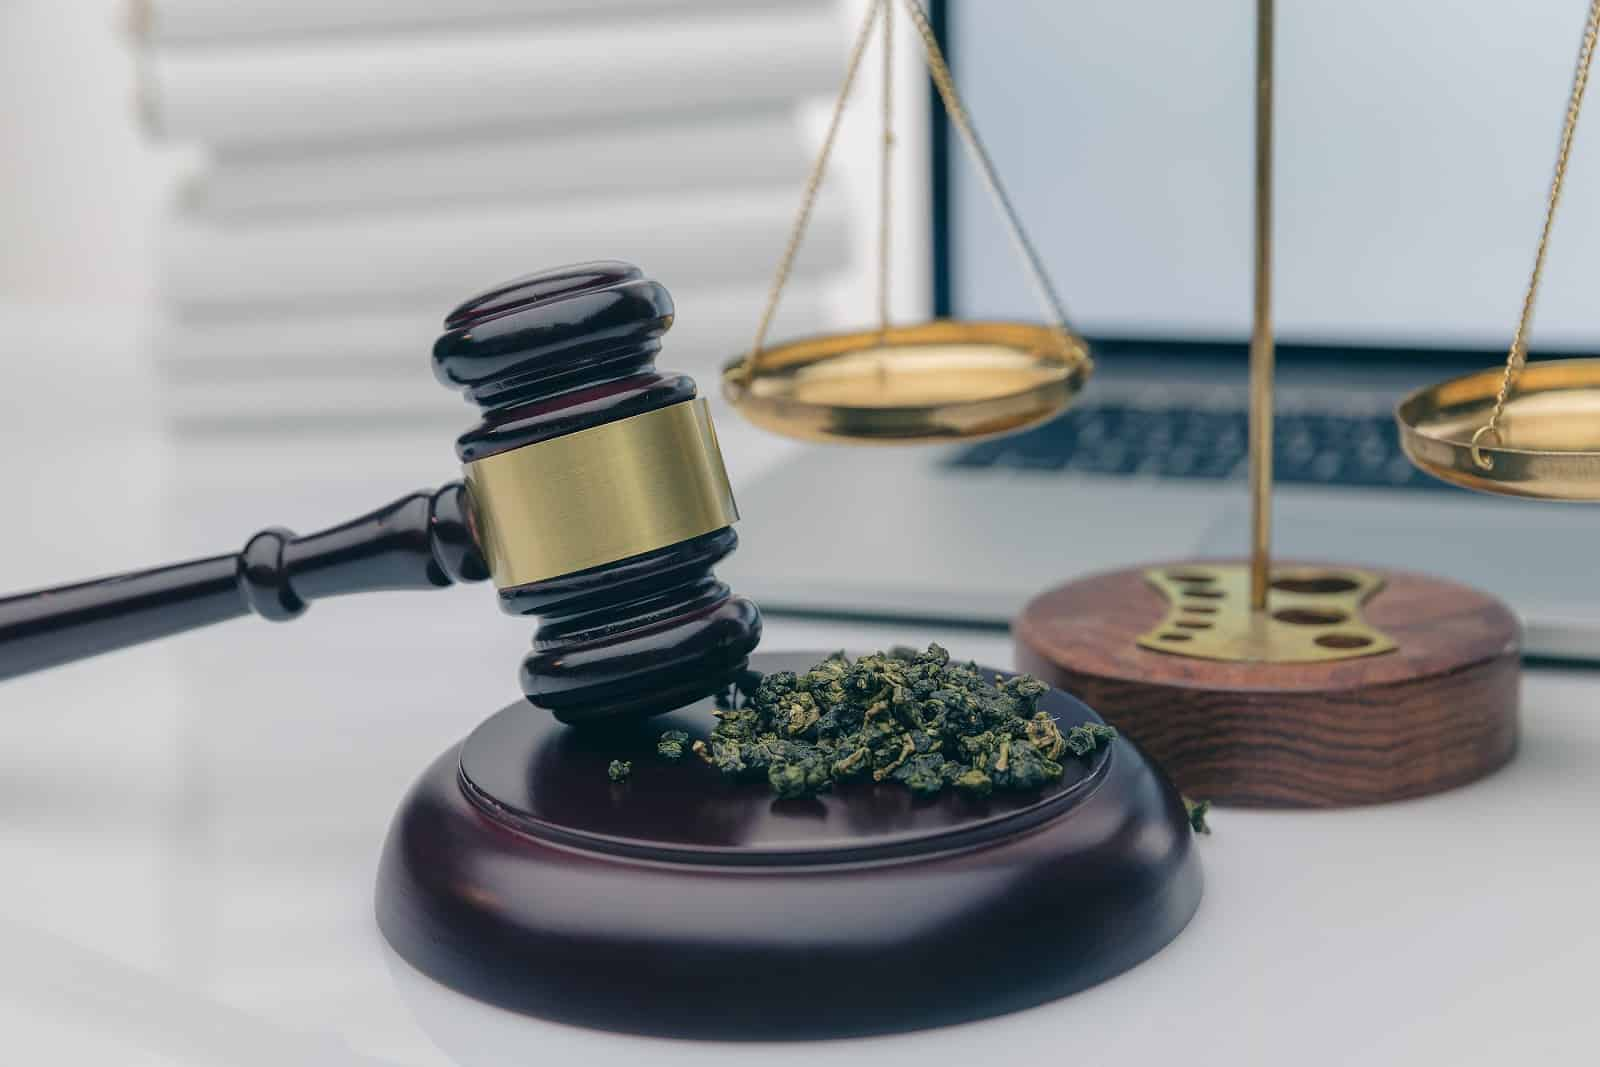 Utah Drug Possession Laws – What You Need to Know